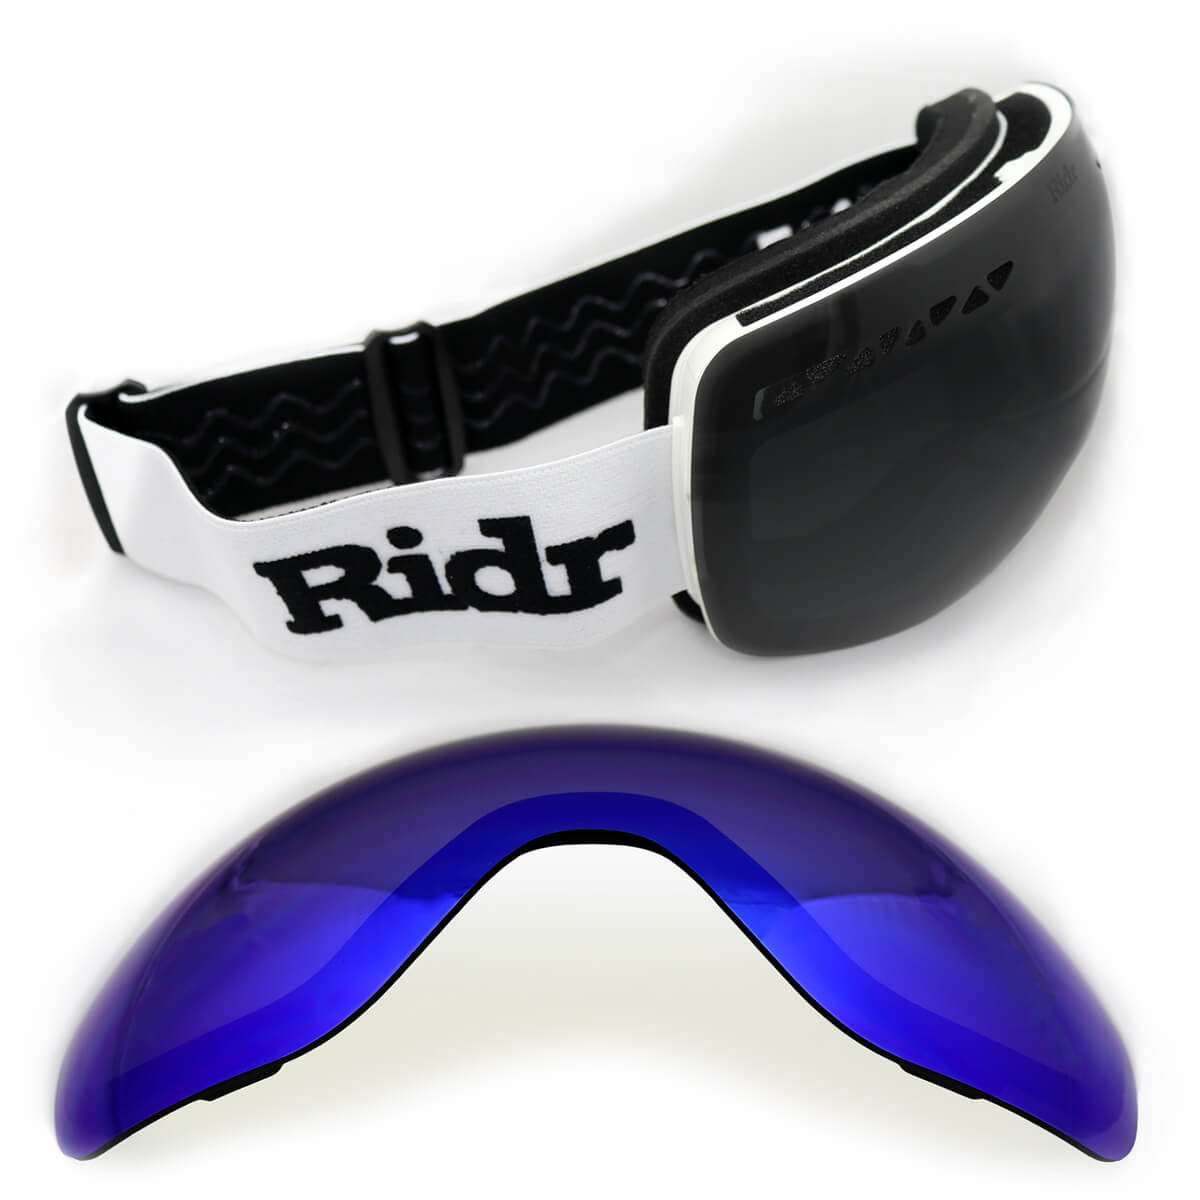 White Ridr Edge Goggles with two interchangeable lenses